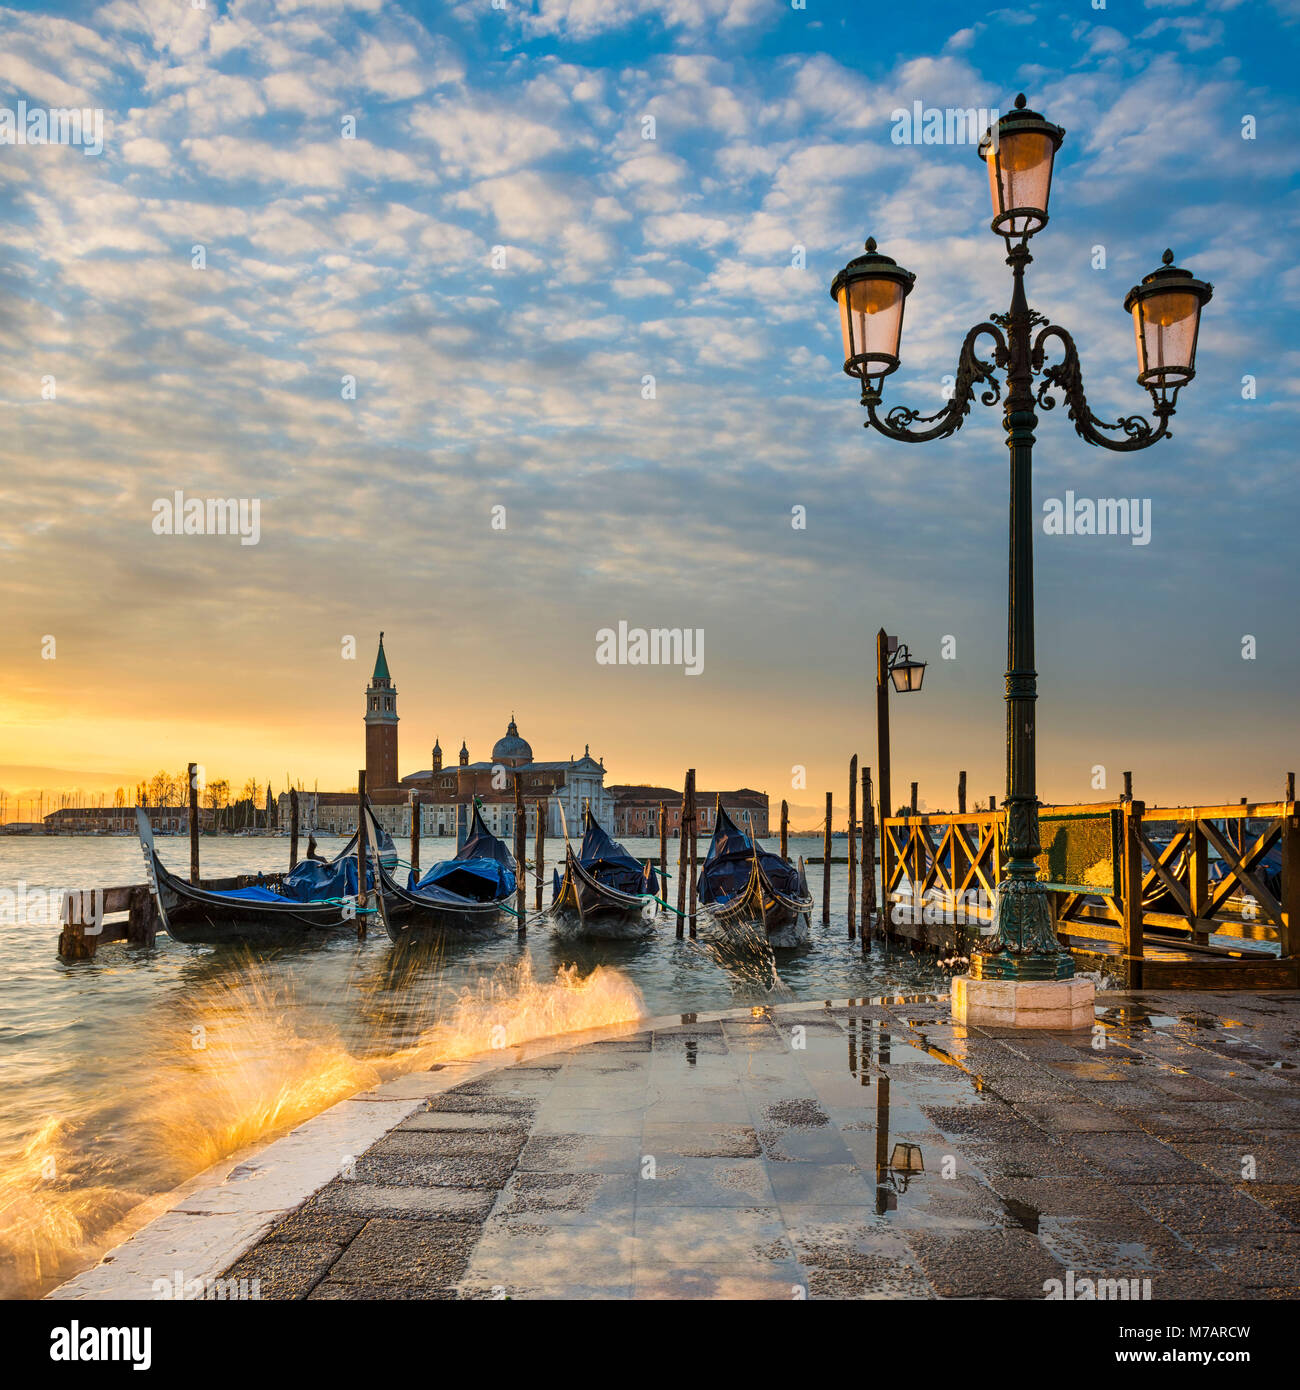 Gondolas on the Grand Canal at sunrise in Venice, Italy Stock Photo